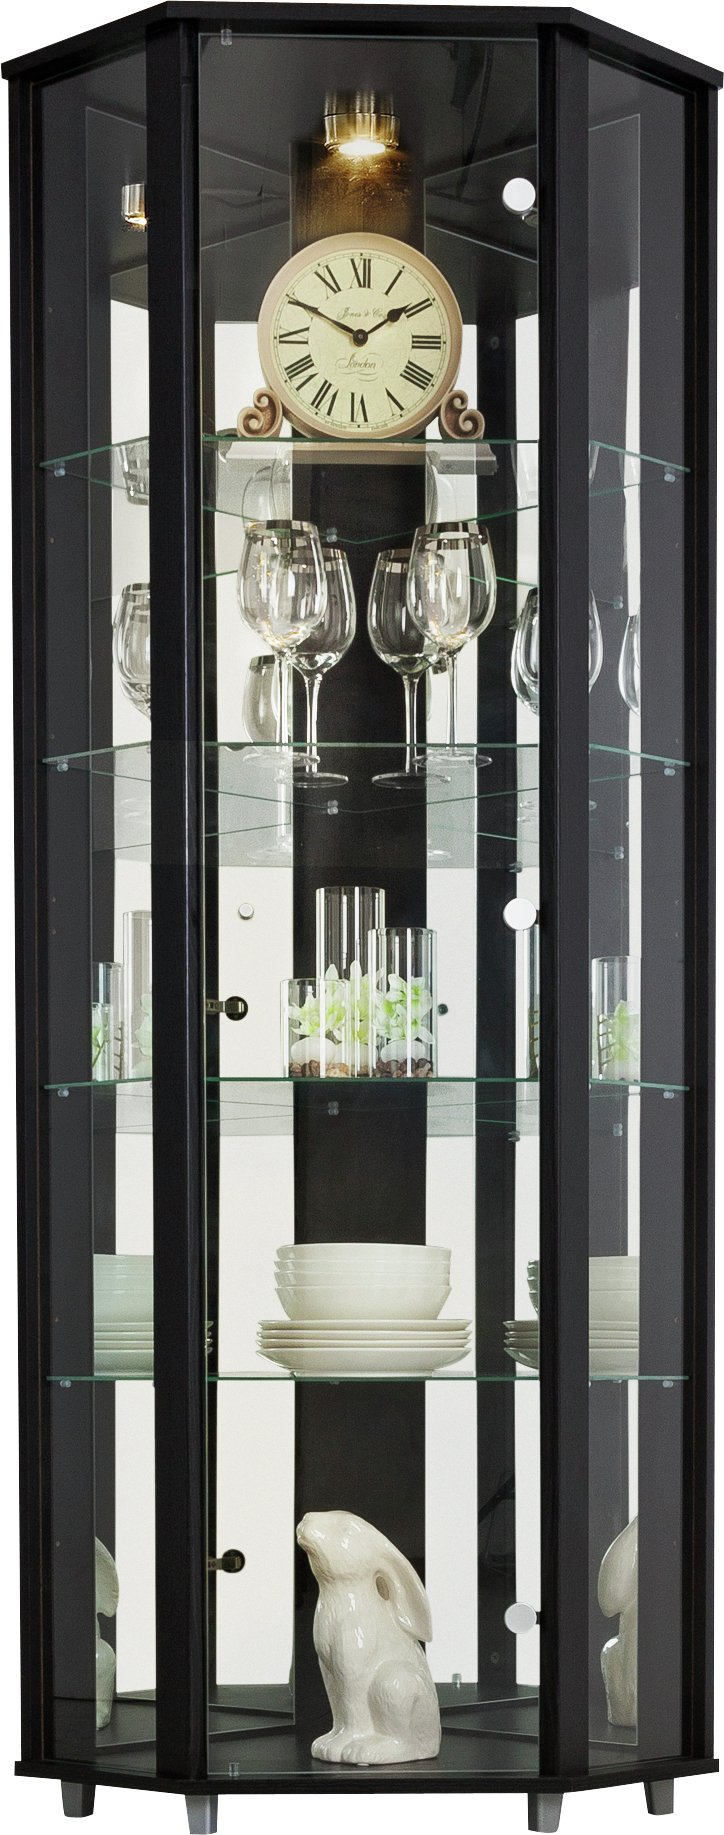 Argos Home 1 Glass Door Corner Display Cabinet - Black